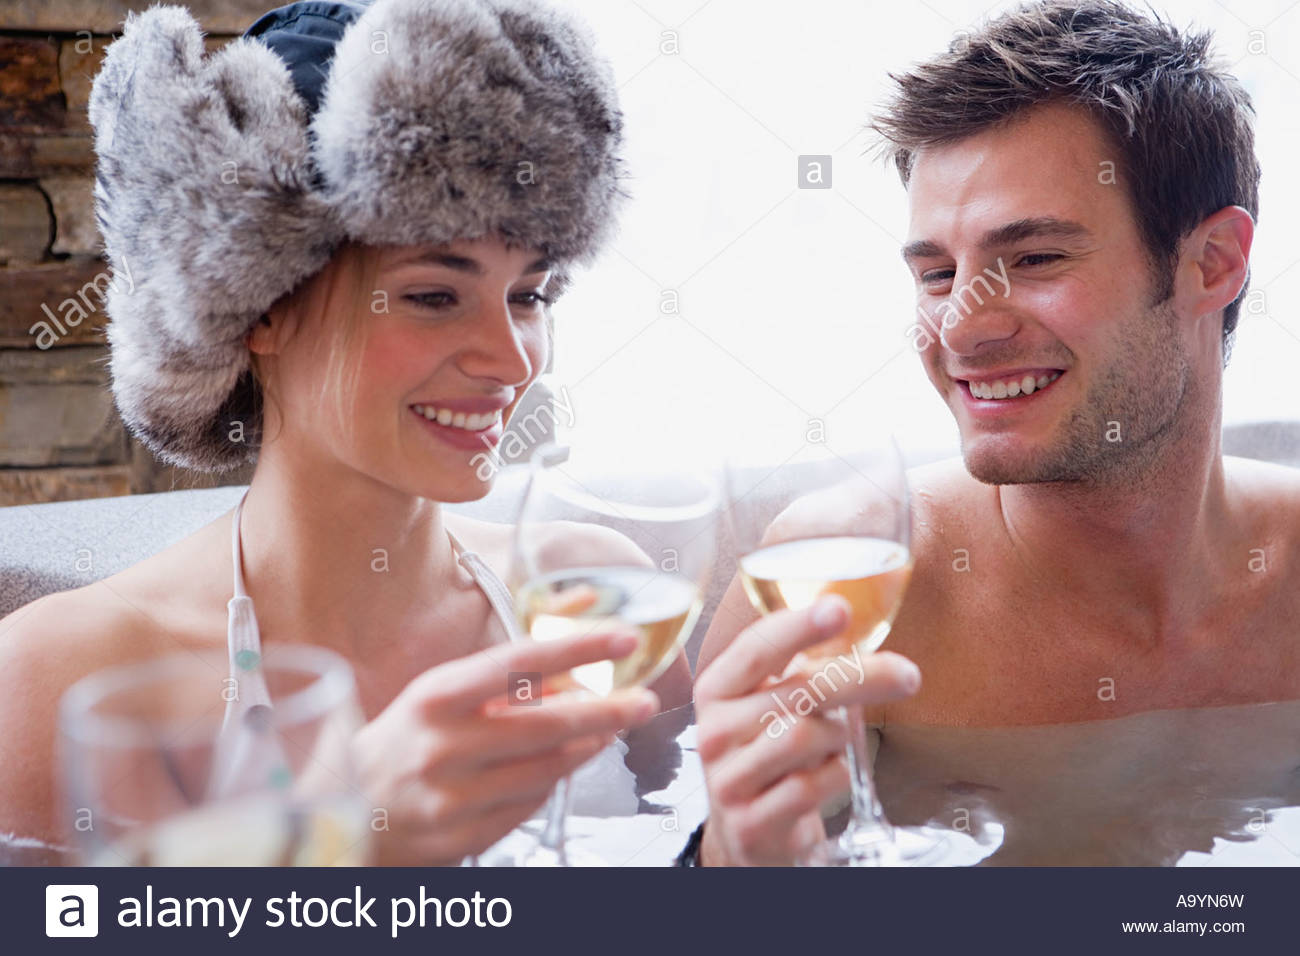 Couple in hot tub with wine - Stock Image